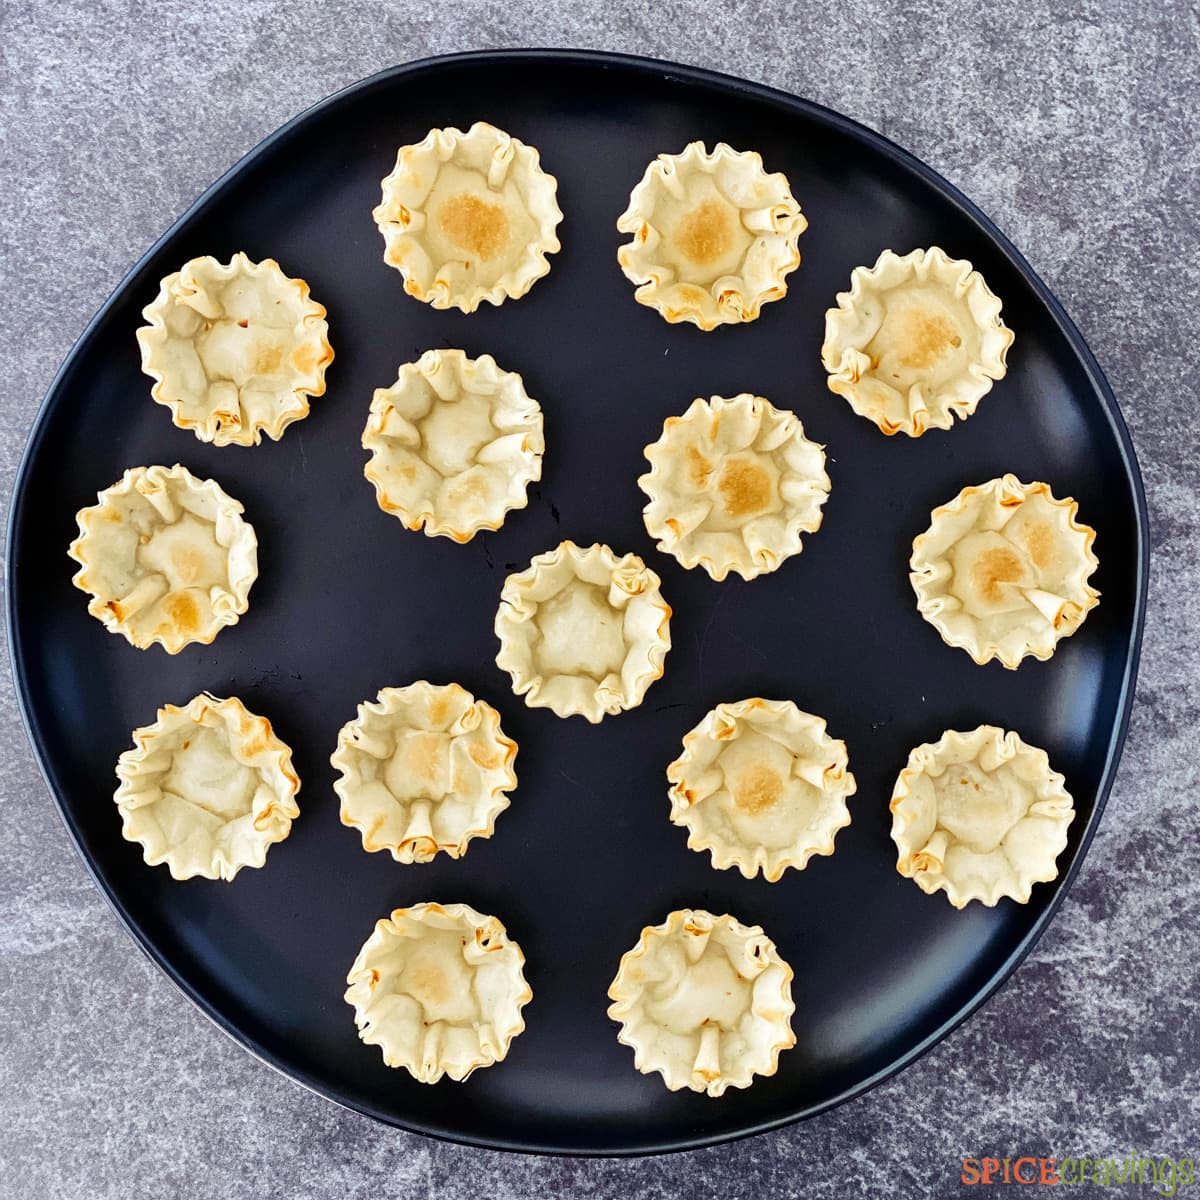 Empty phyllo cups on a round tray